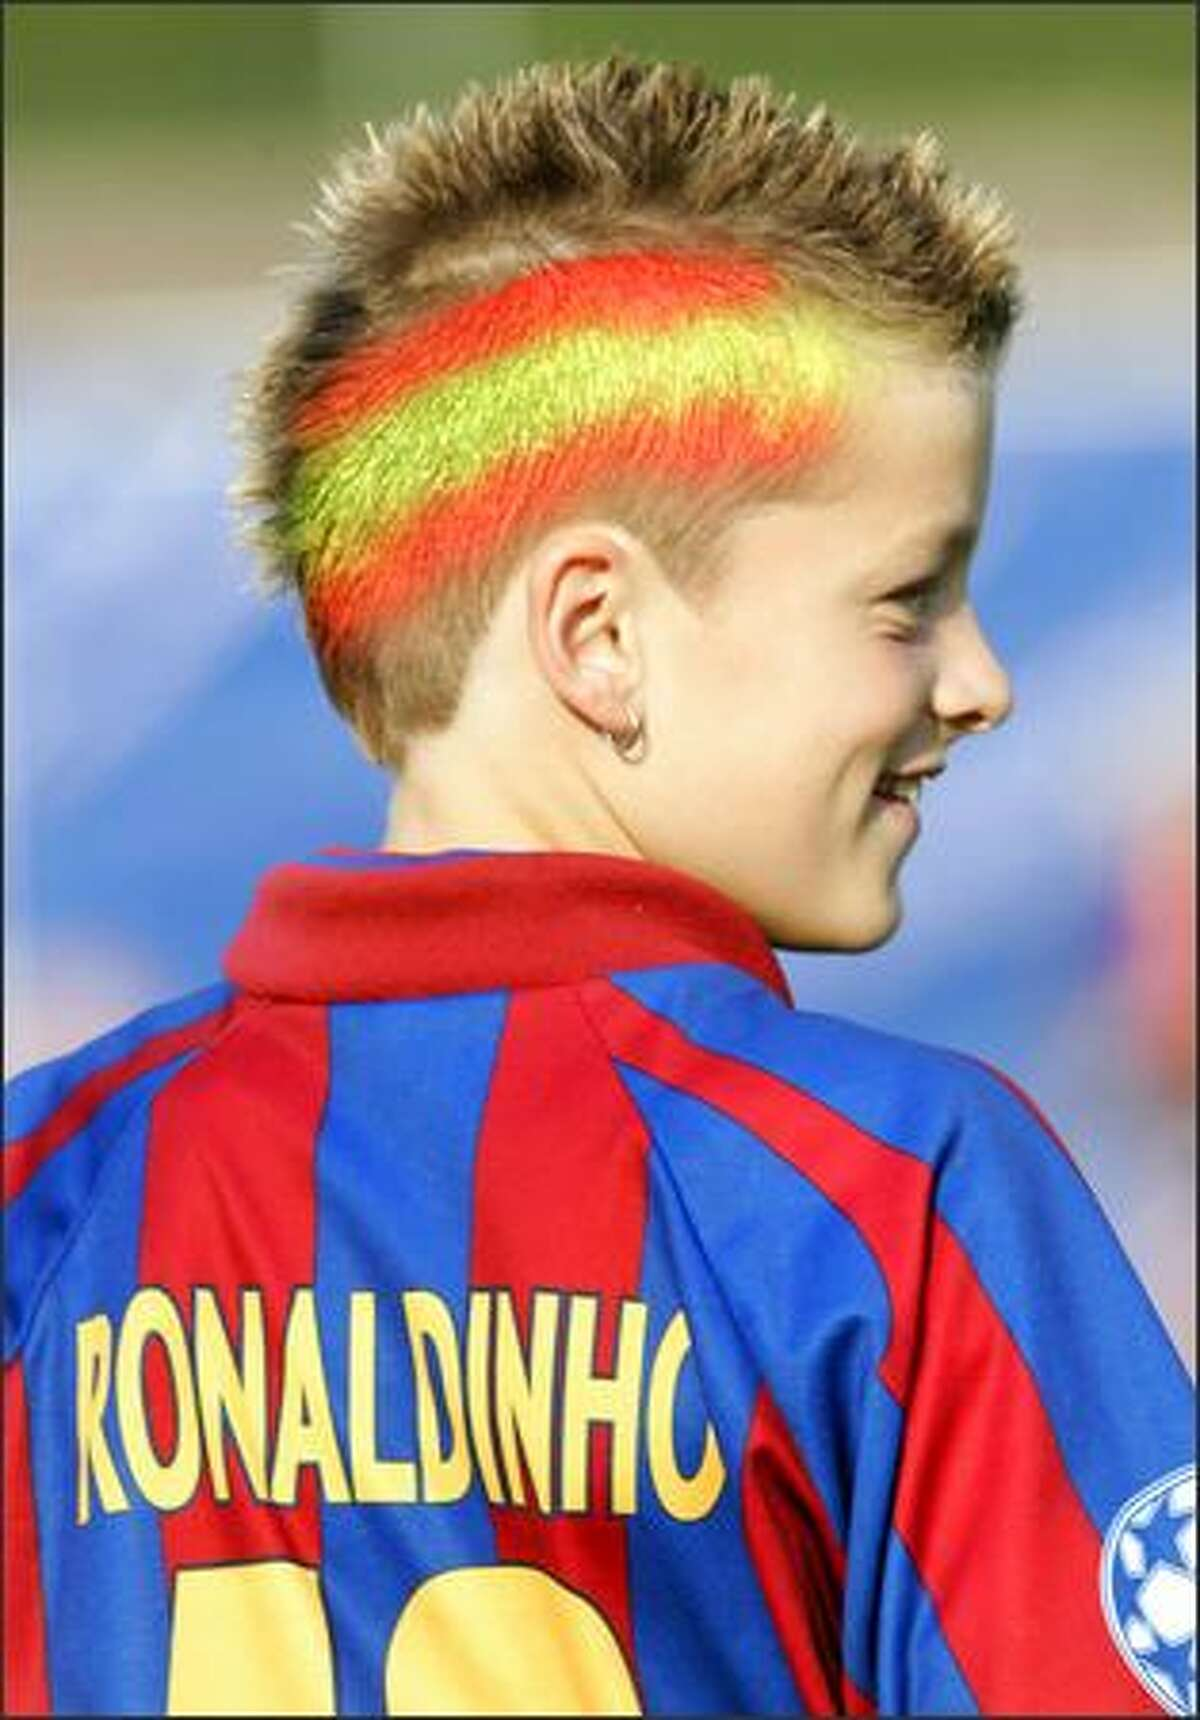 A girl wearing an FC Barcelona Ronalidnho jersey and with a Spanish flag painted in her hair is seen at a training session for Spain's national team. Spain will start the World Cup in Germany in group H with Ukraine, Tunisia and Saudi Arabia. (AP Photo/Bernat Armangue)